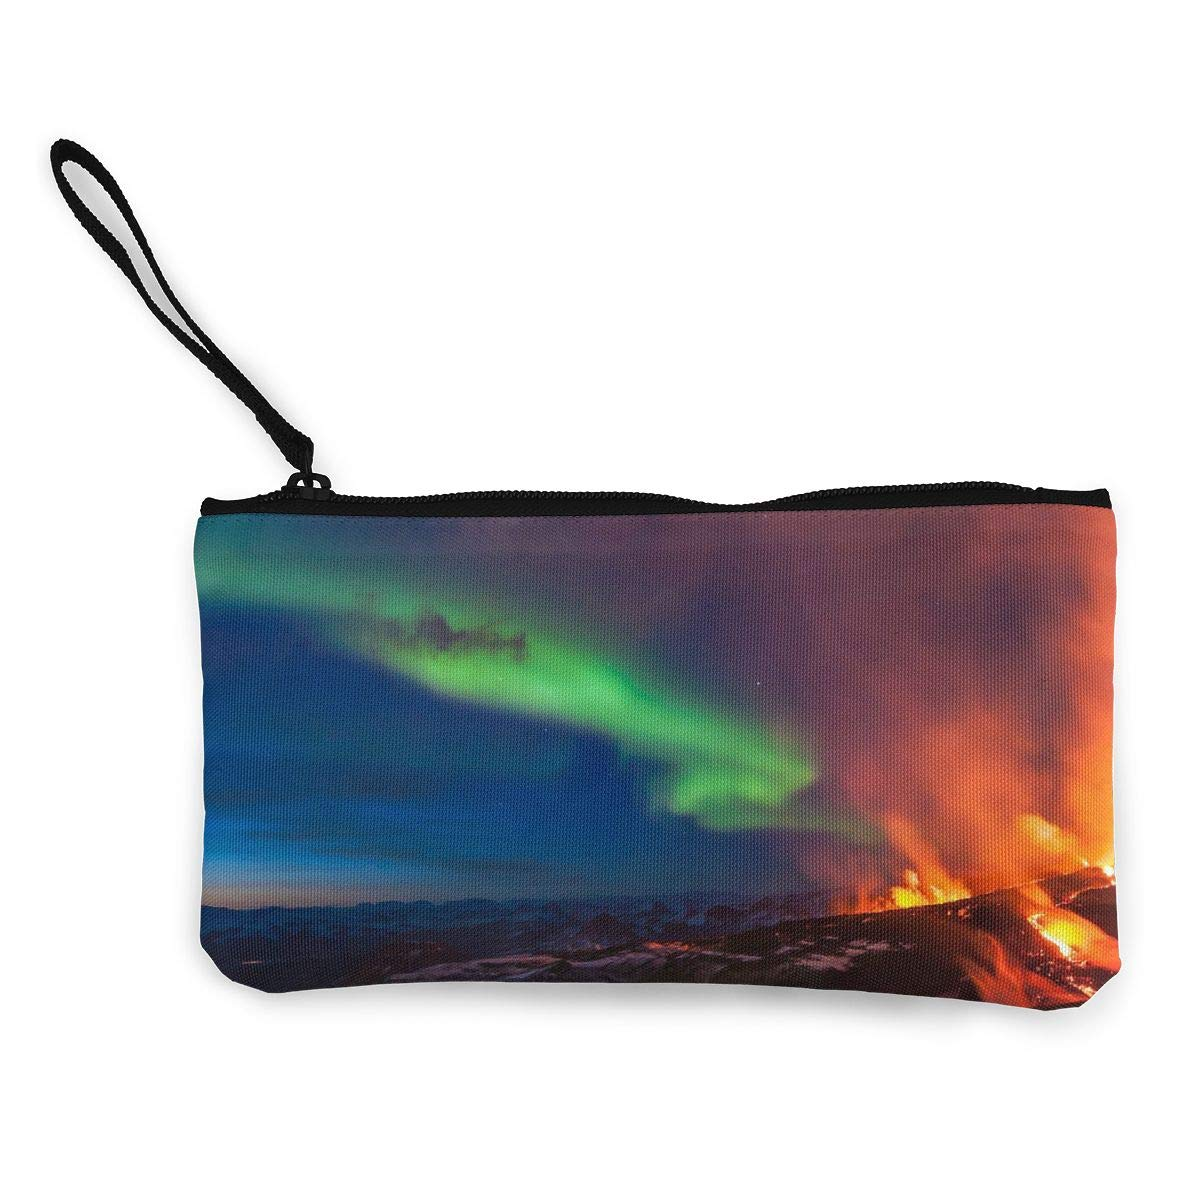 Canvas Coin Purse Volcanic Eruption Cosmetic Makeup Storage Wallet Clutch Purse Pencil Bag